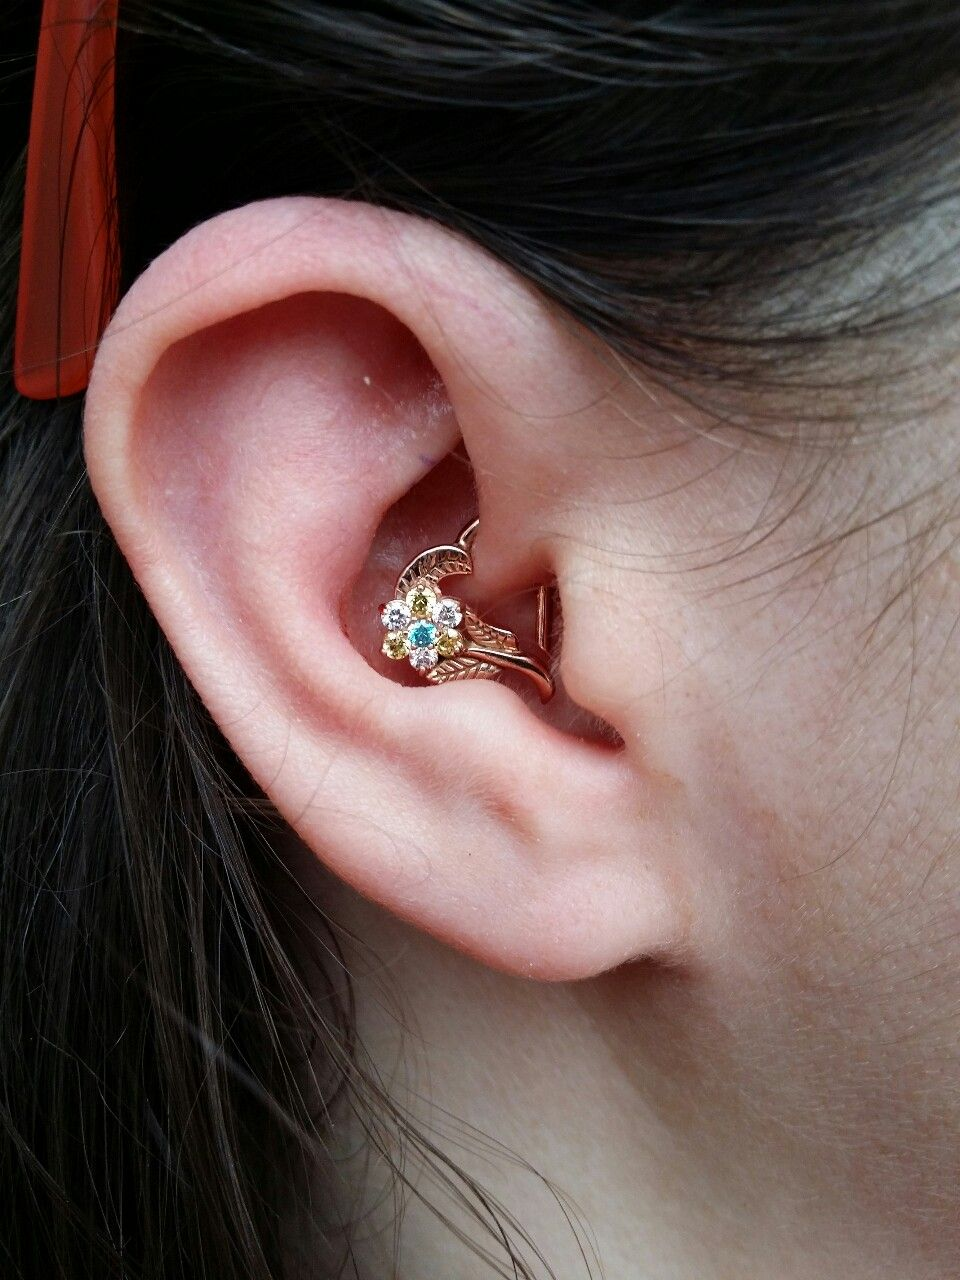 Daith Piercing I Performed Today Featuring A 14 Kt Rose Gold Tammy Heart  From Leroi Fine